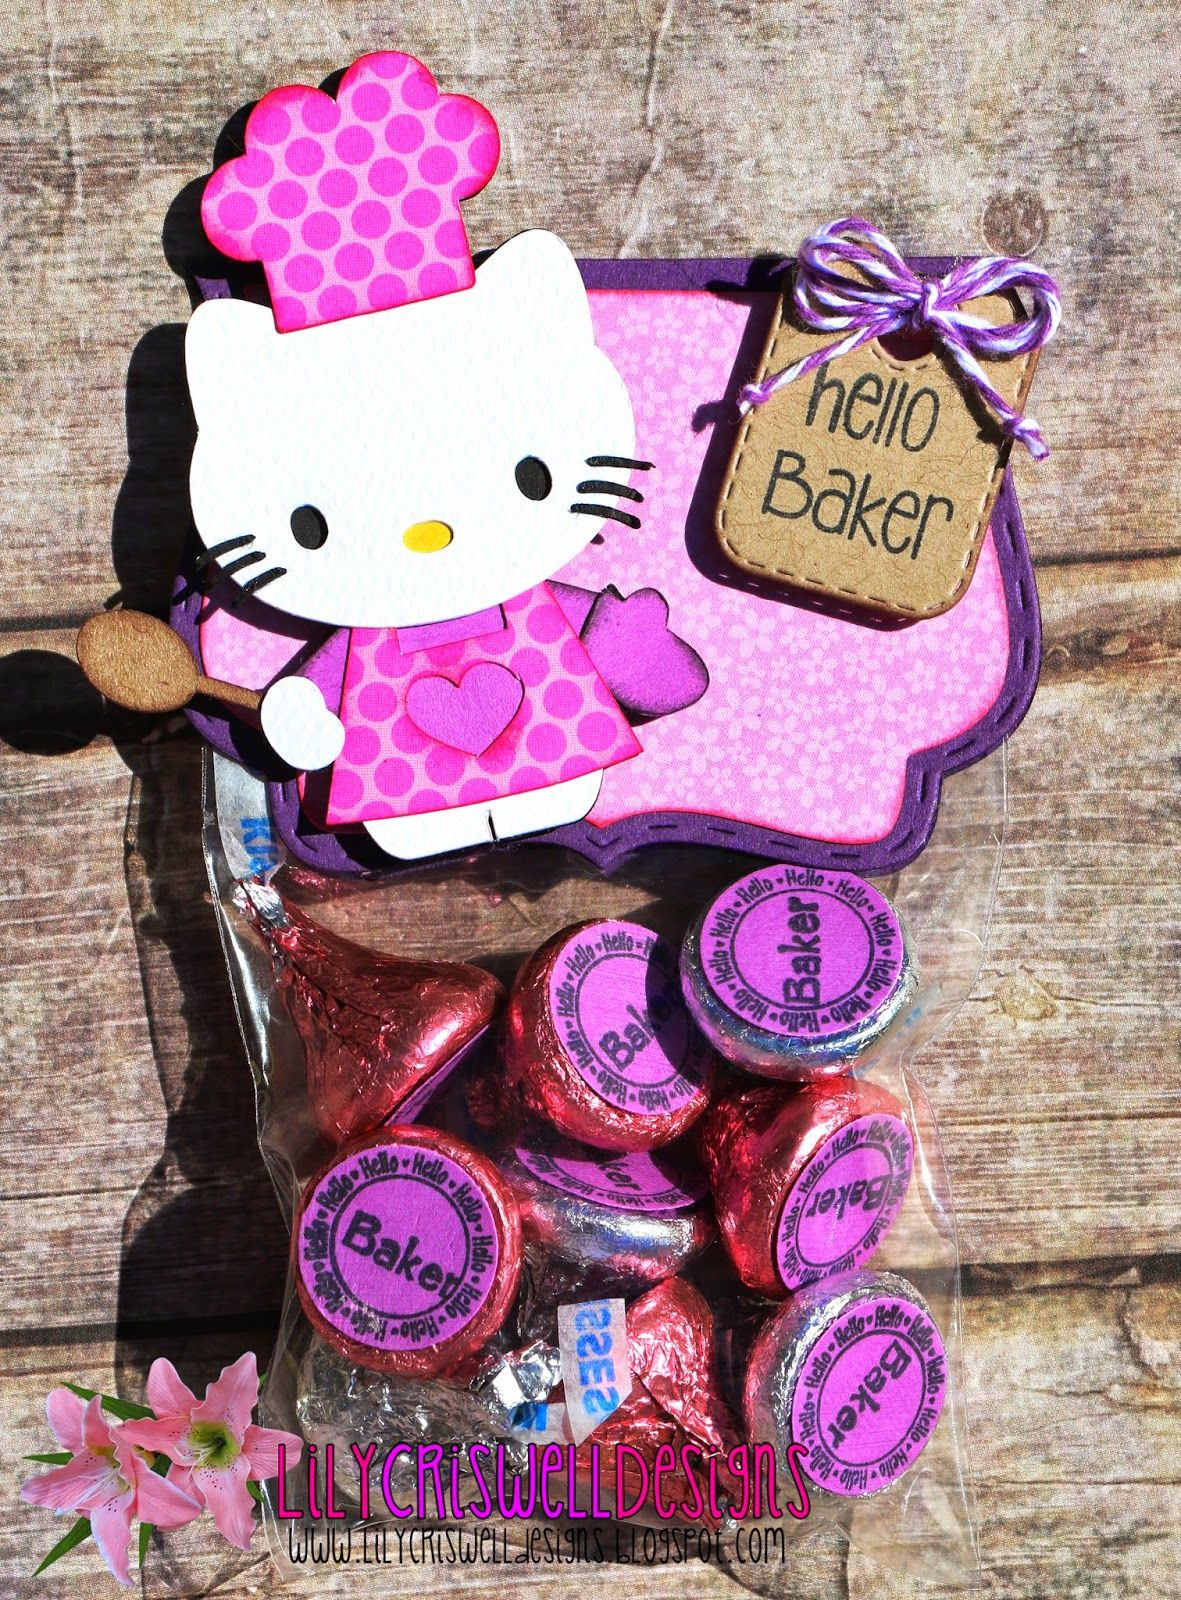 Lily Criswell Design 2nd Annual Kitty Hop